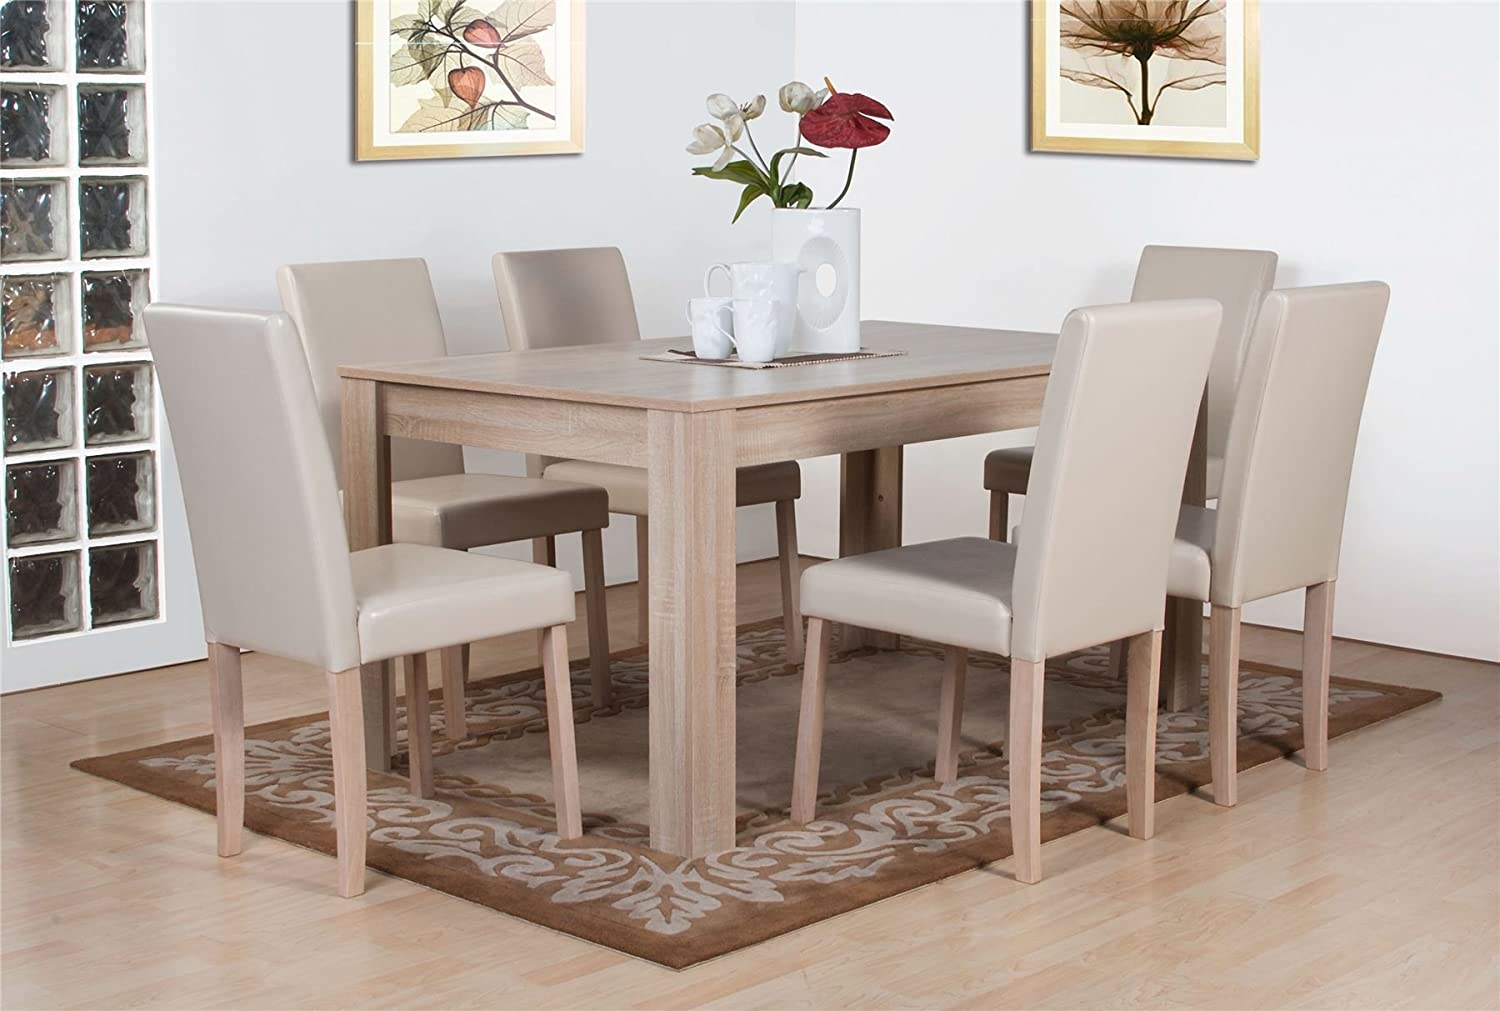 Dover White Oak Effect Wooden Dining Table And 6 High Back Chair Set:  Amazon.co.uk: Kitchen U0026 Home Part 85